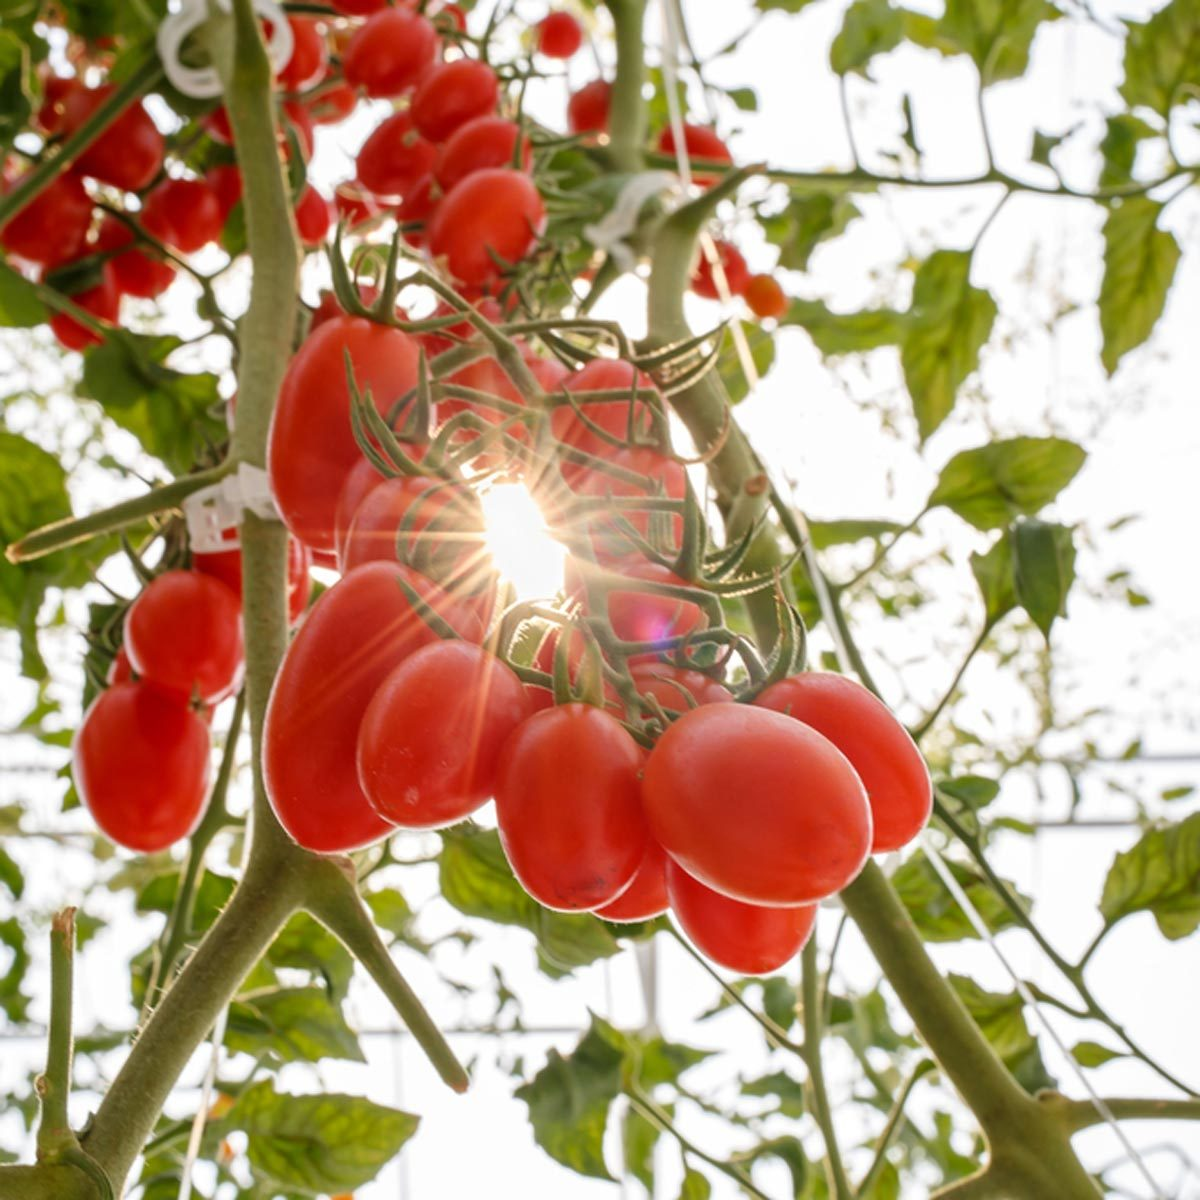 The Best Advice for Growing Tomatoes